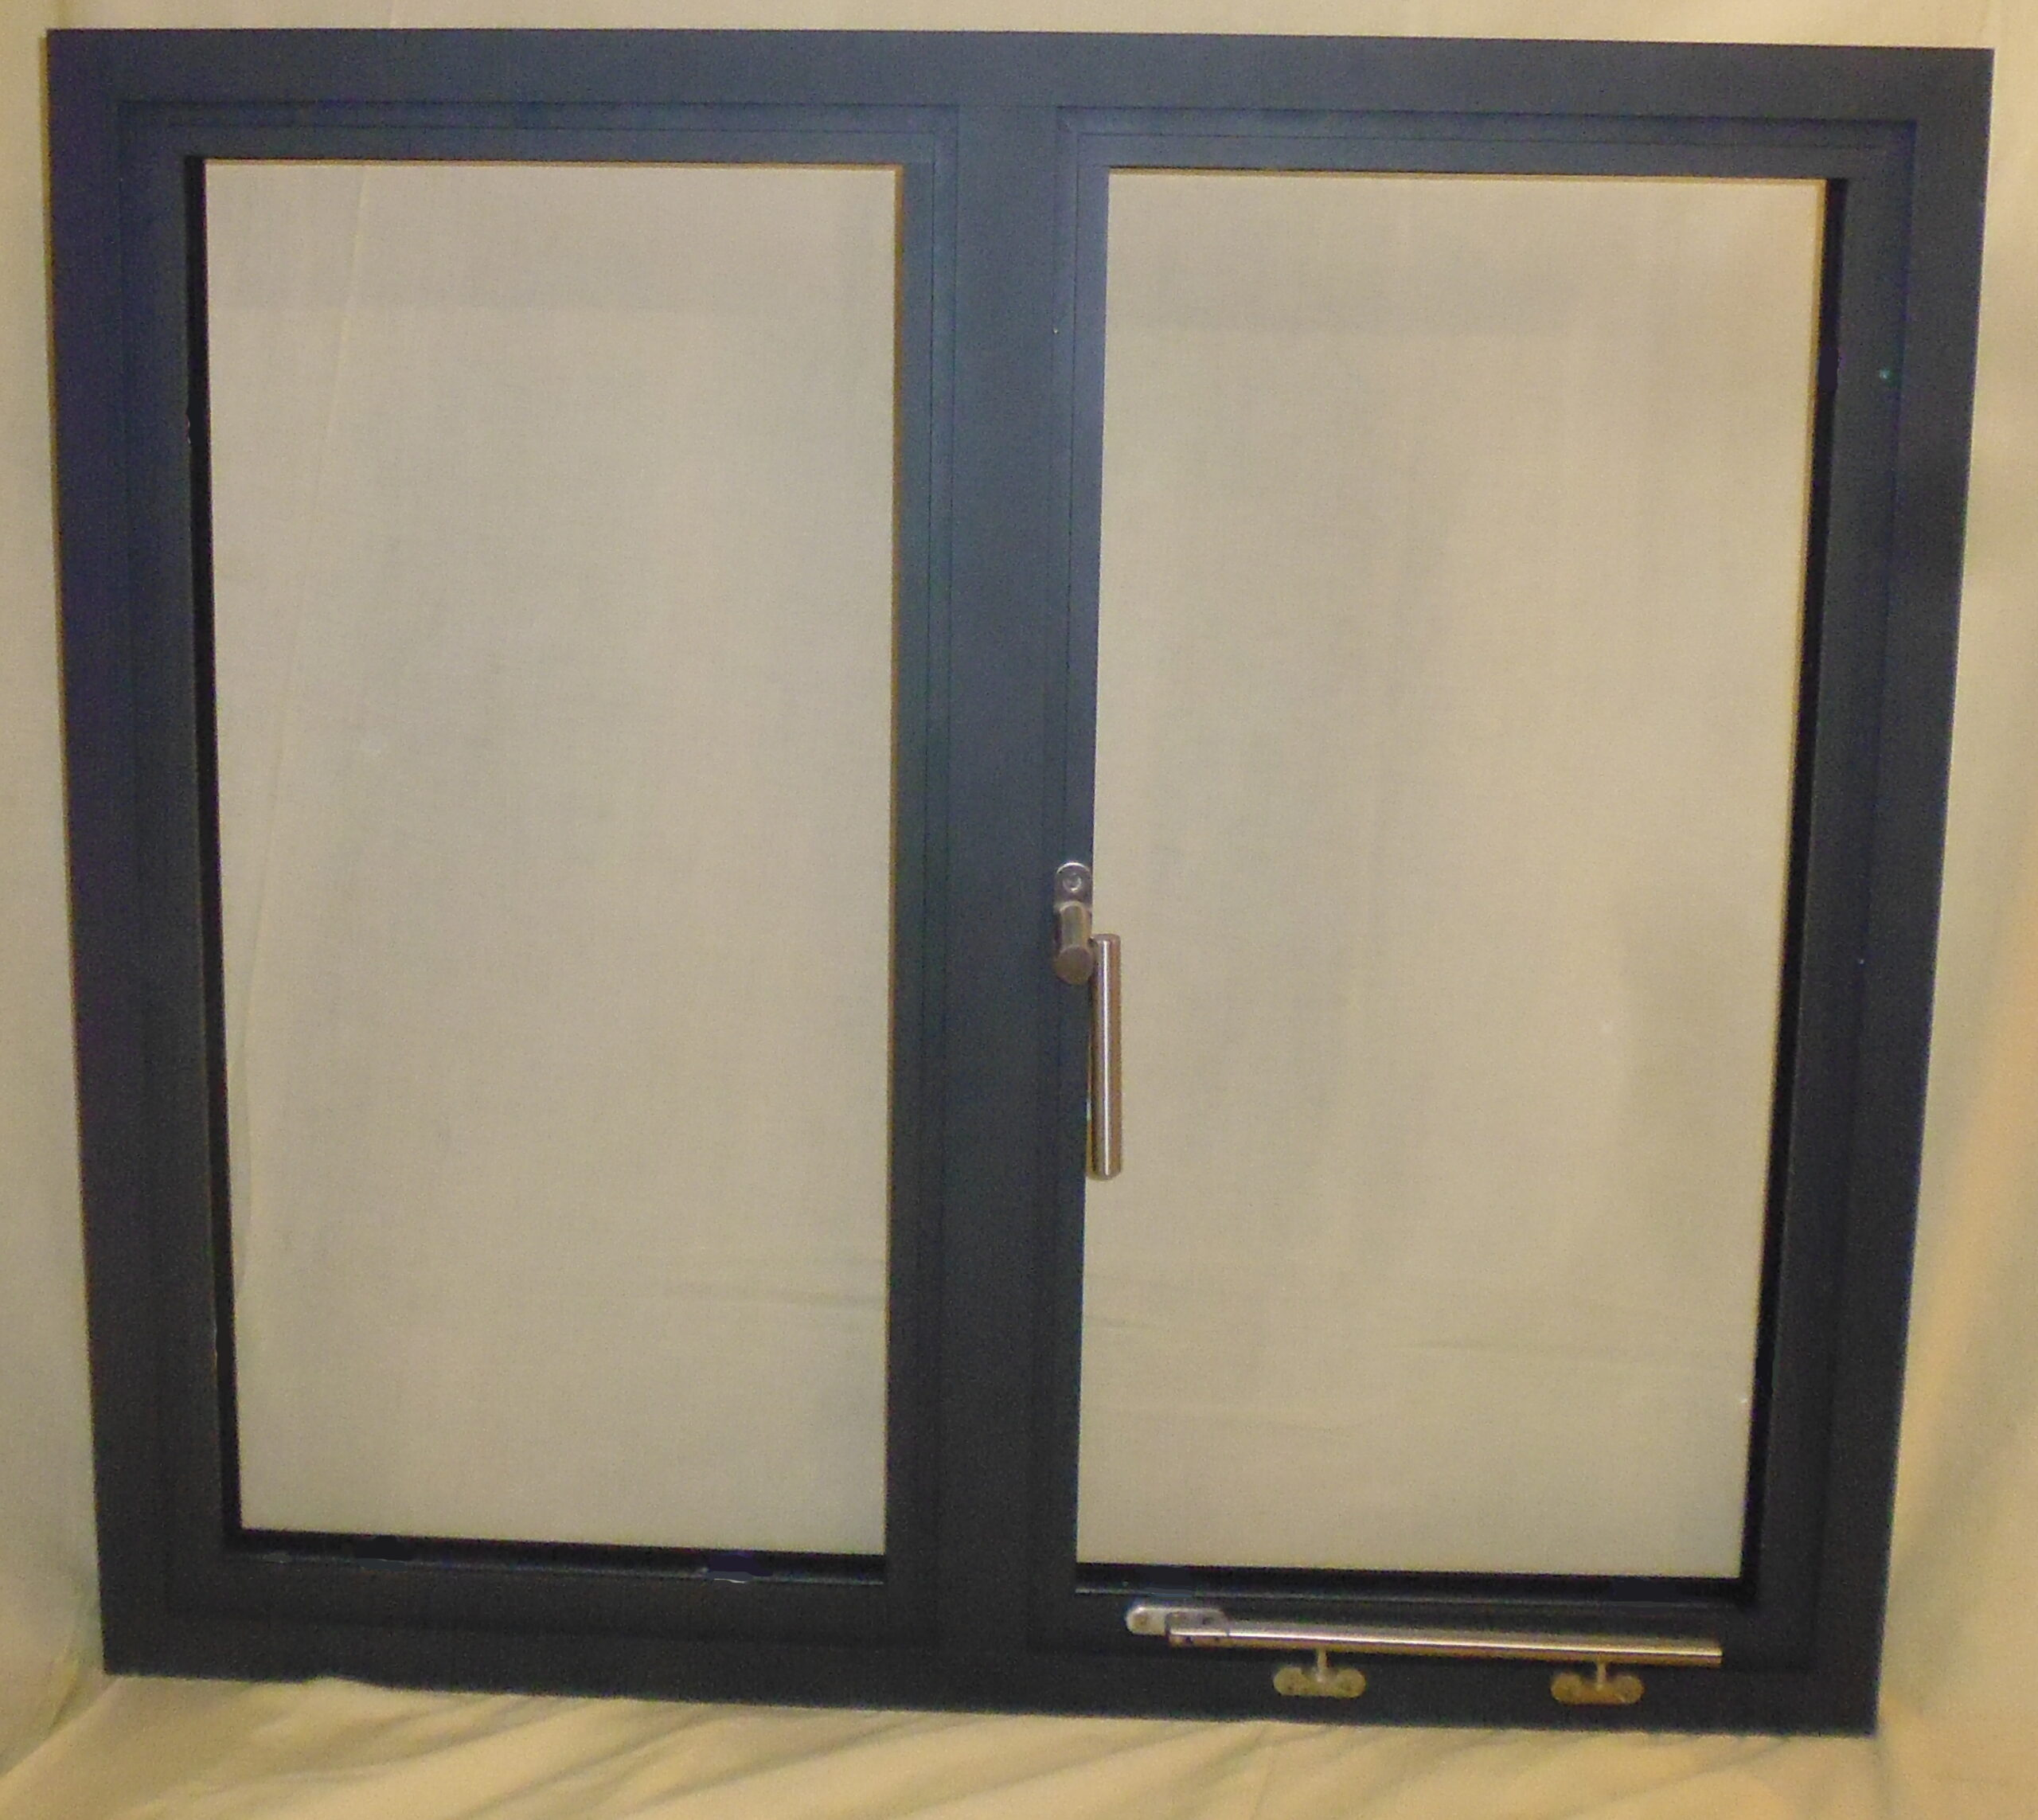 We are now manufacturing the new 'Alitherm 500' aluminium flush casement from 'Smart Systems'